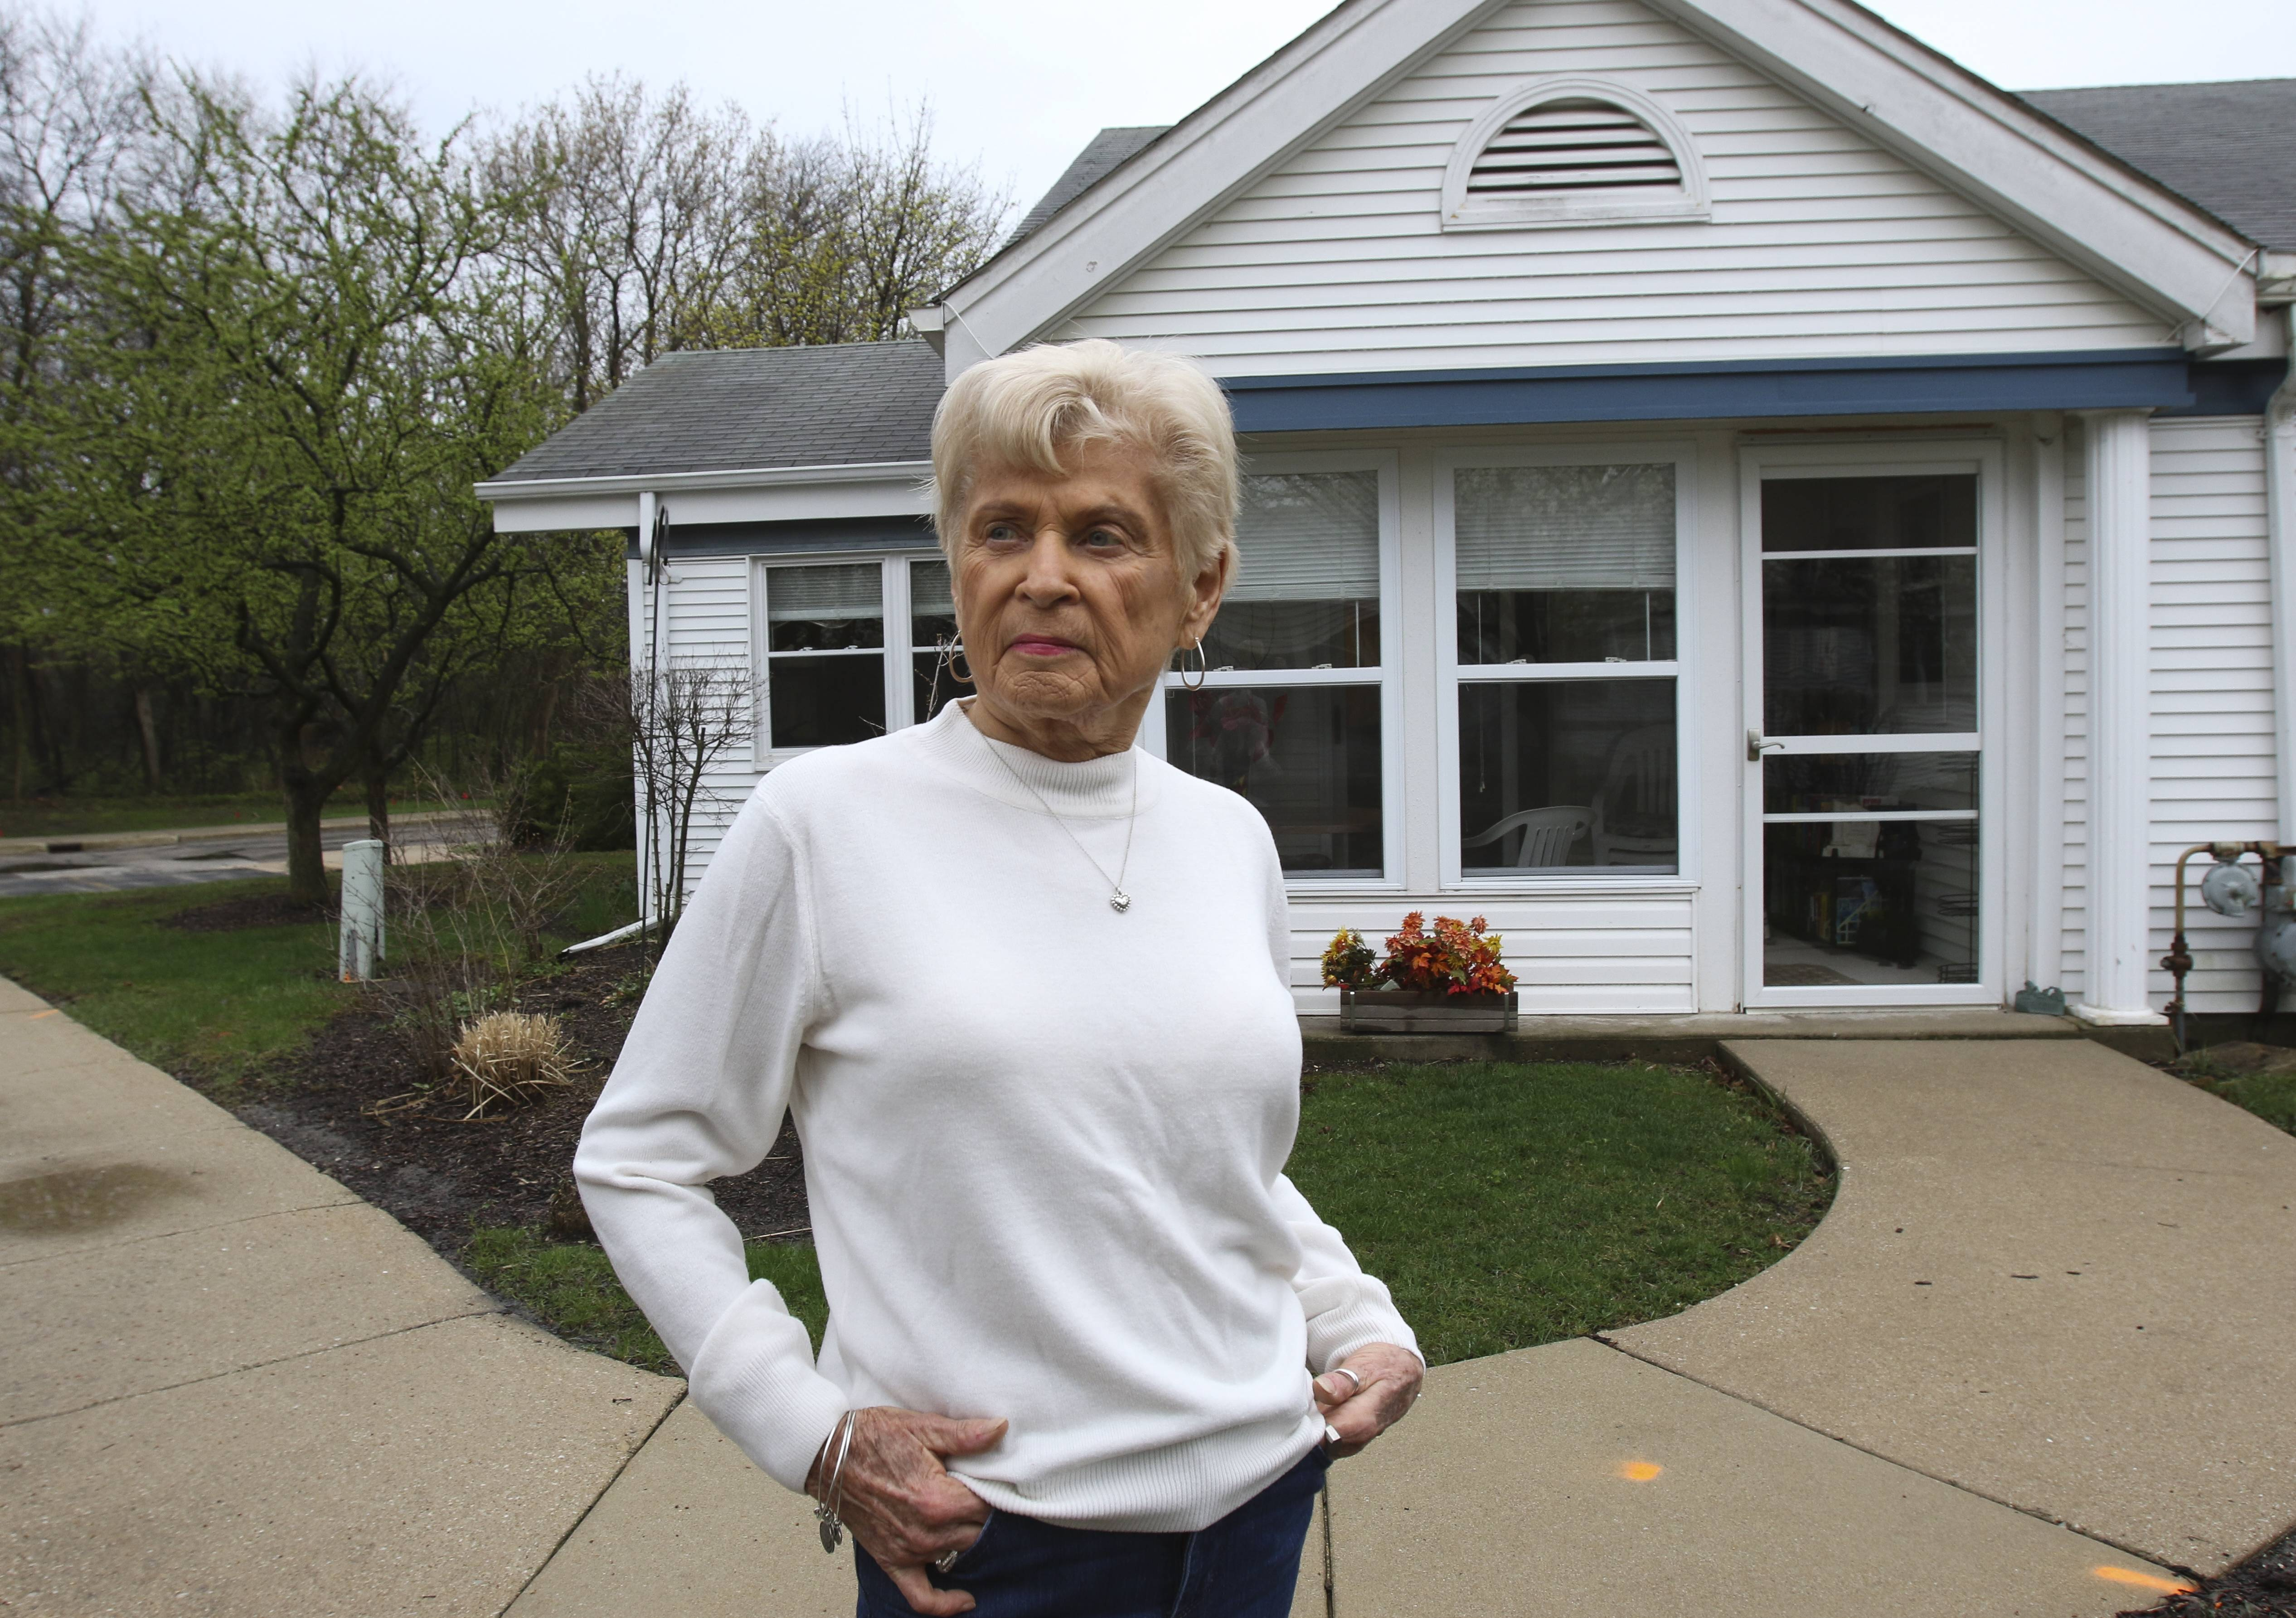 Downers Grove seniors fear eviction if development moves forward